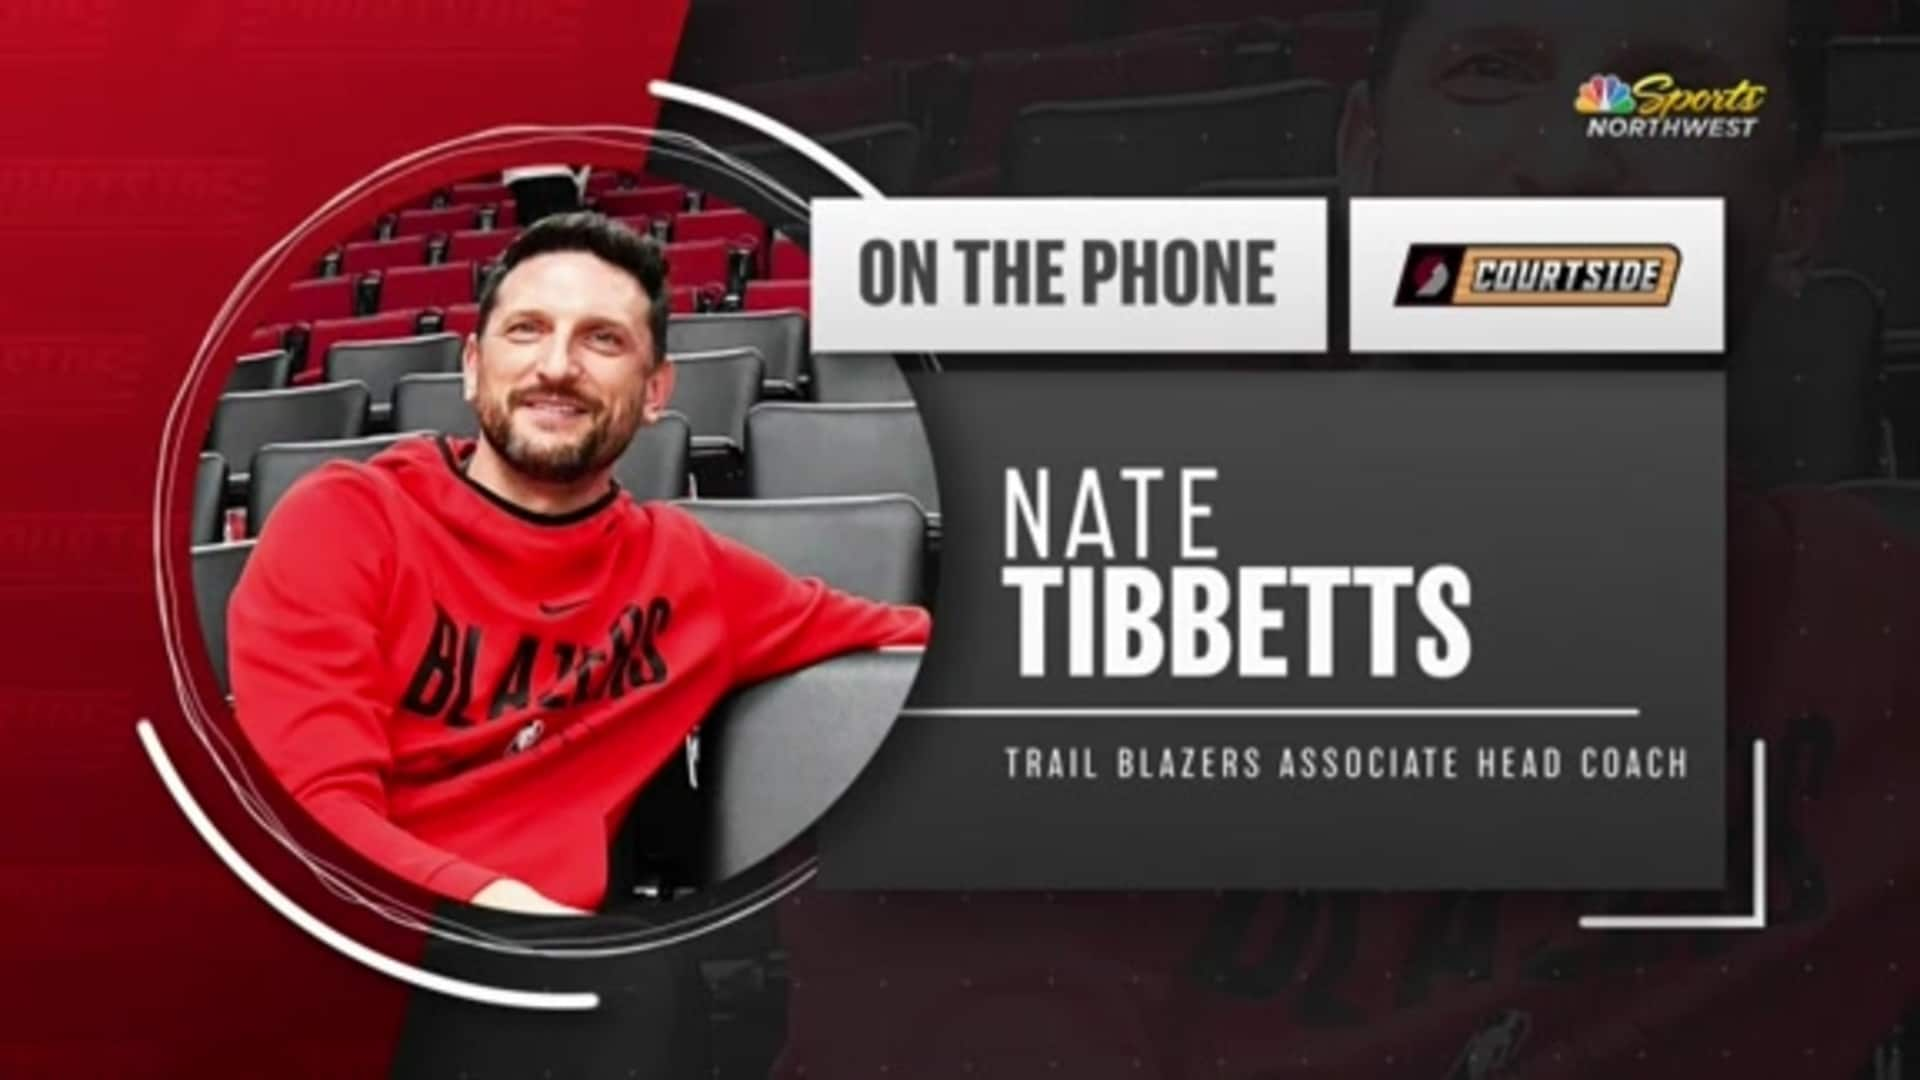 Nate Tibbetts Joins Trail Blazers Courtside